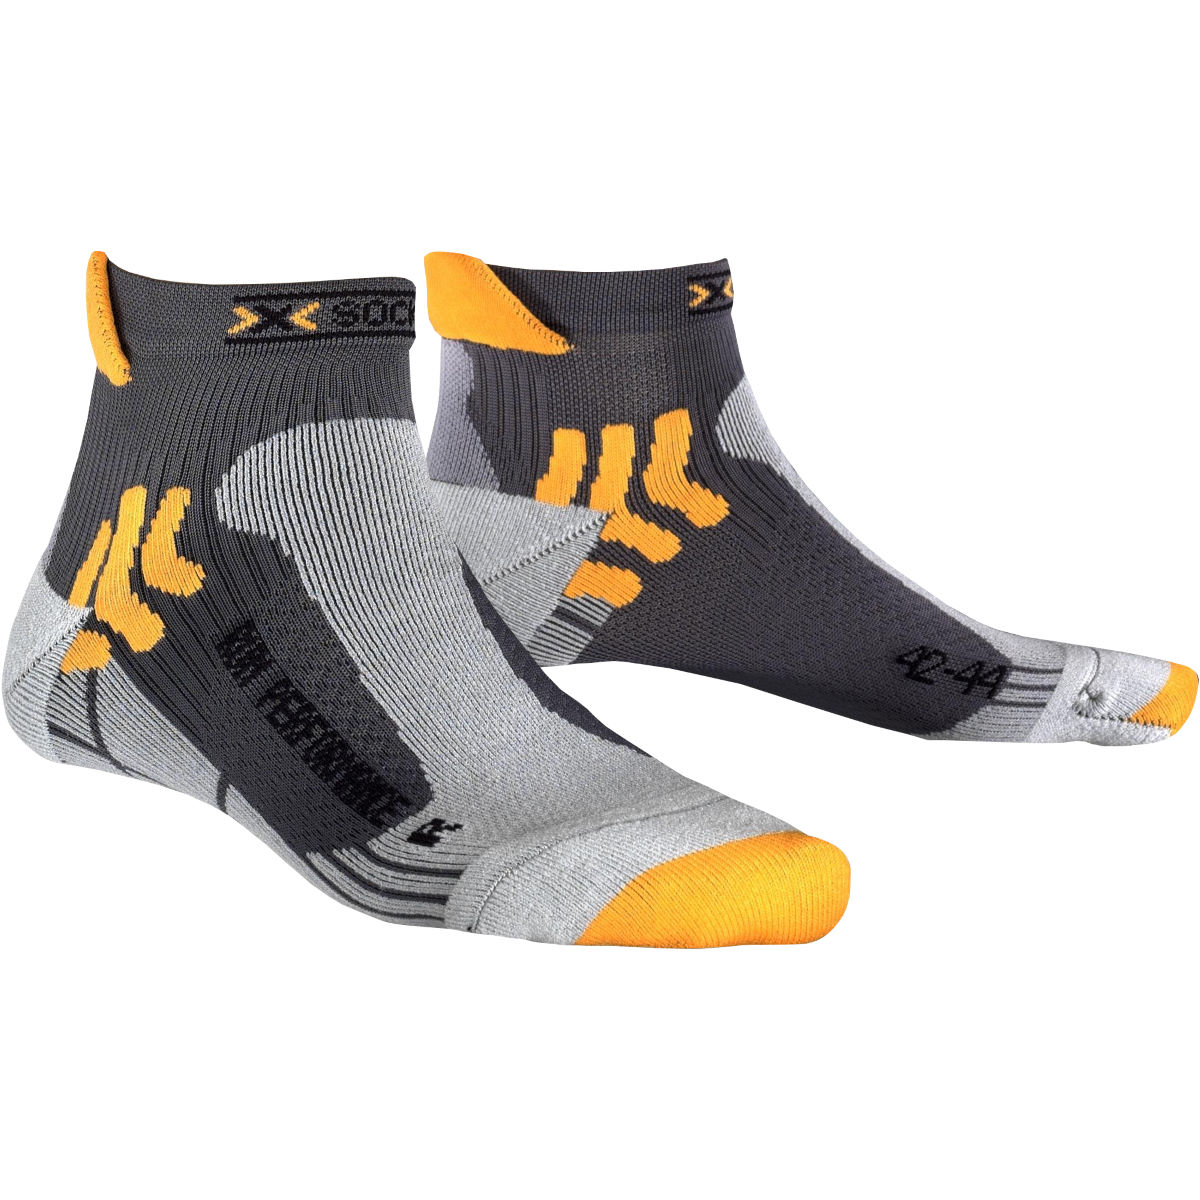 X socks run performance socks running socks anthracite x20039 x03